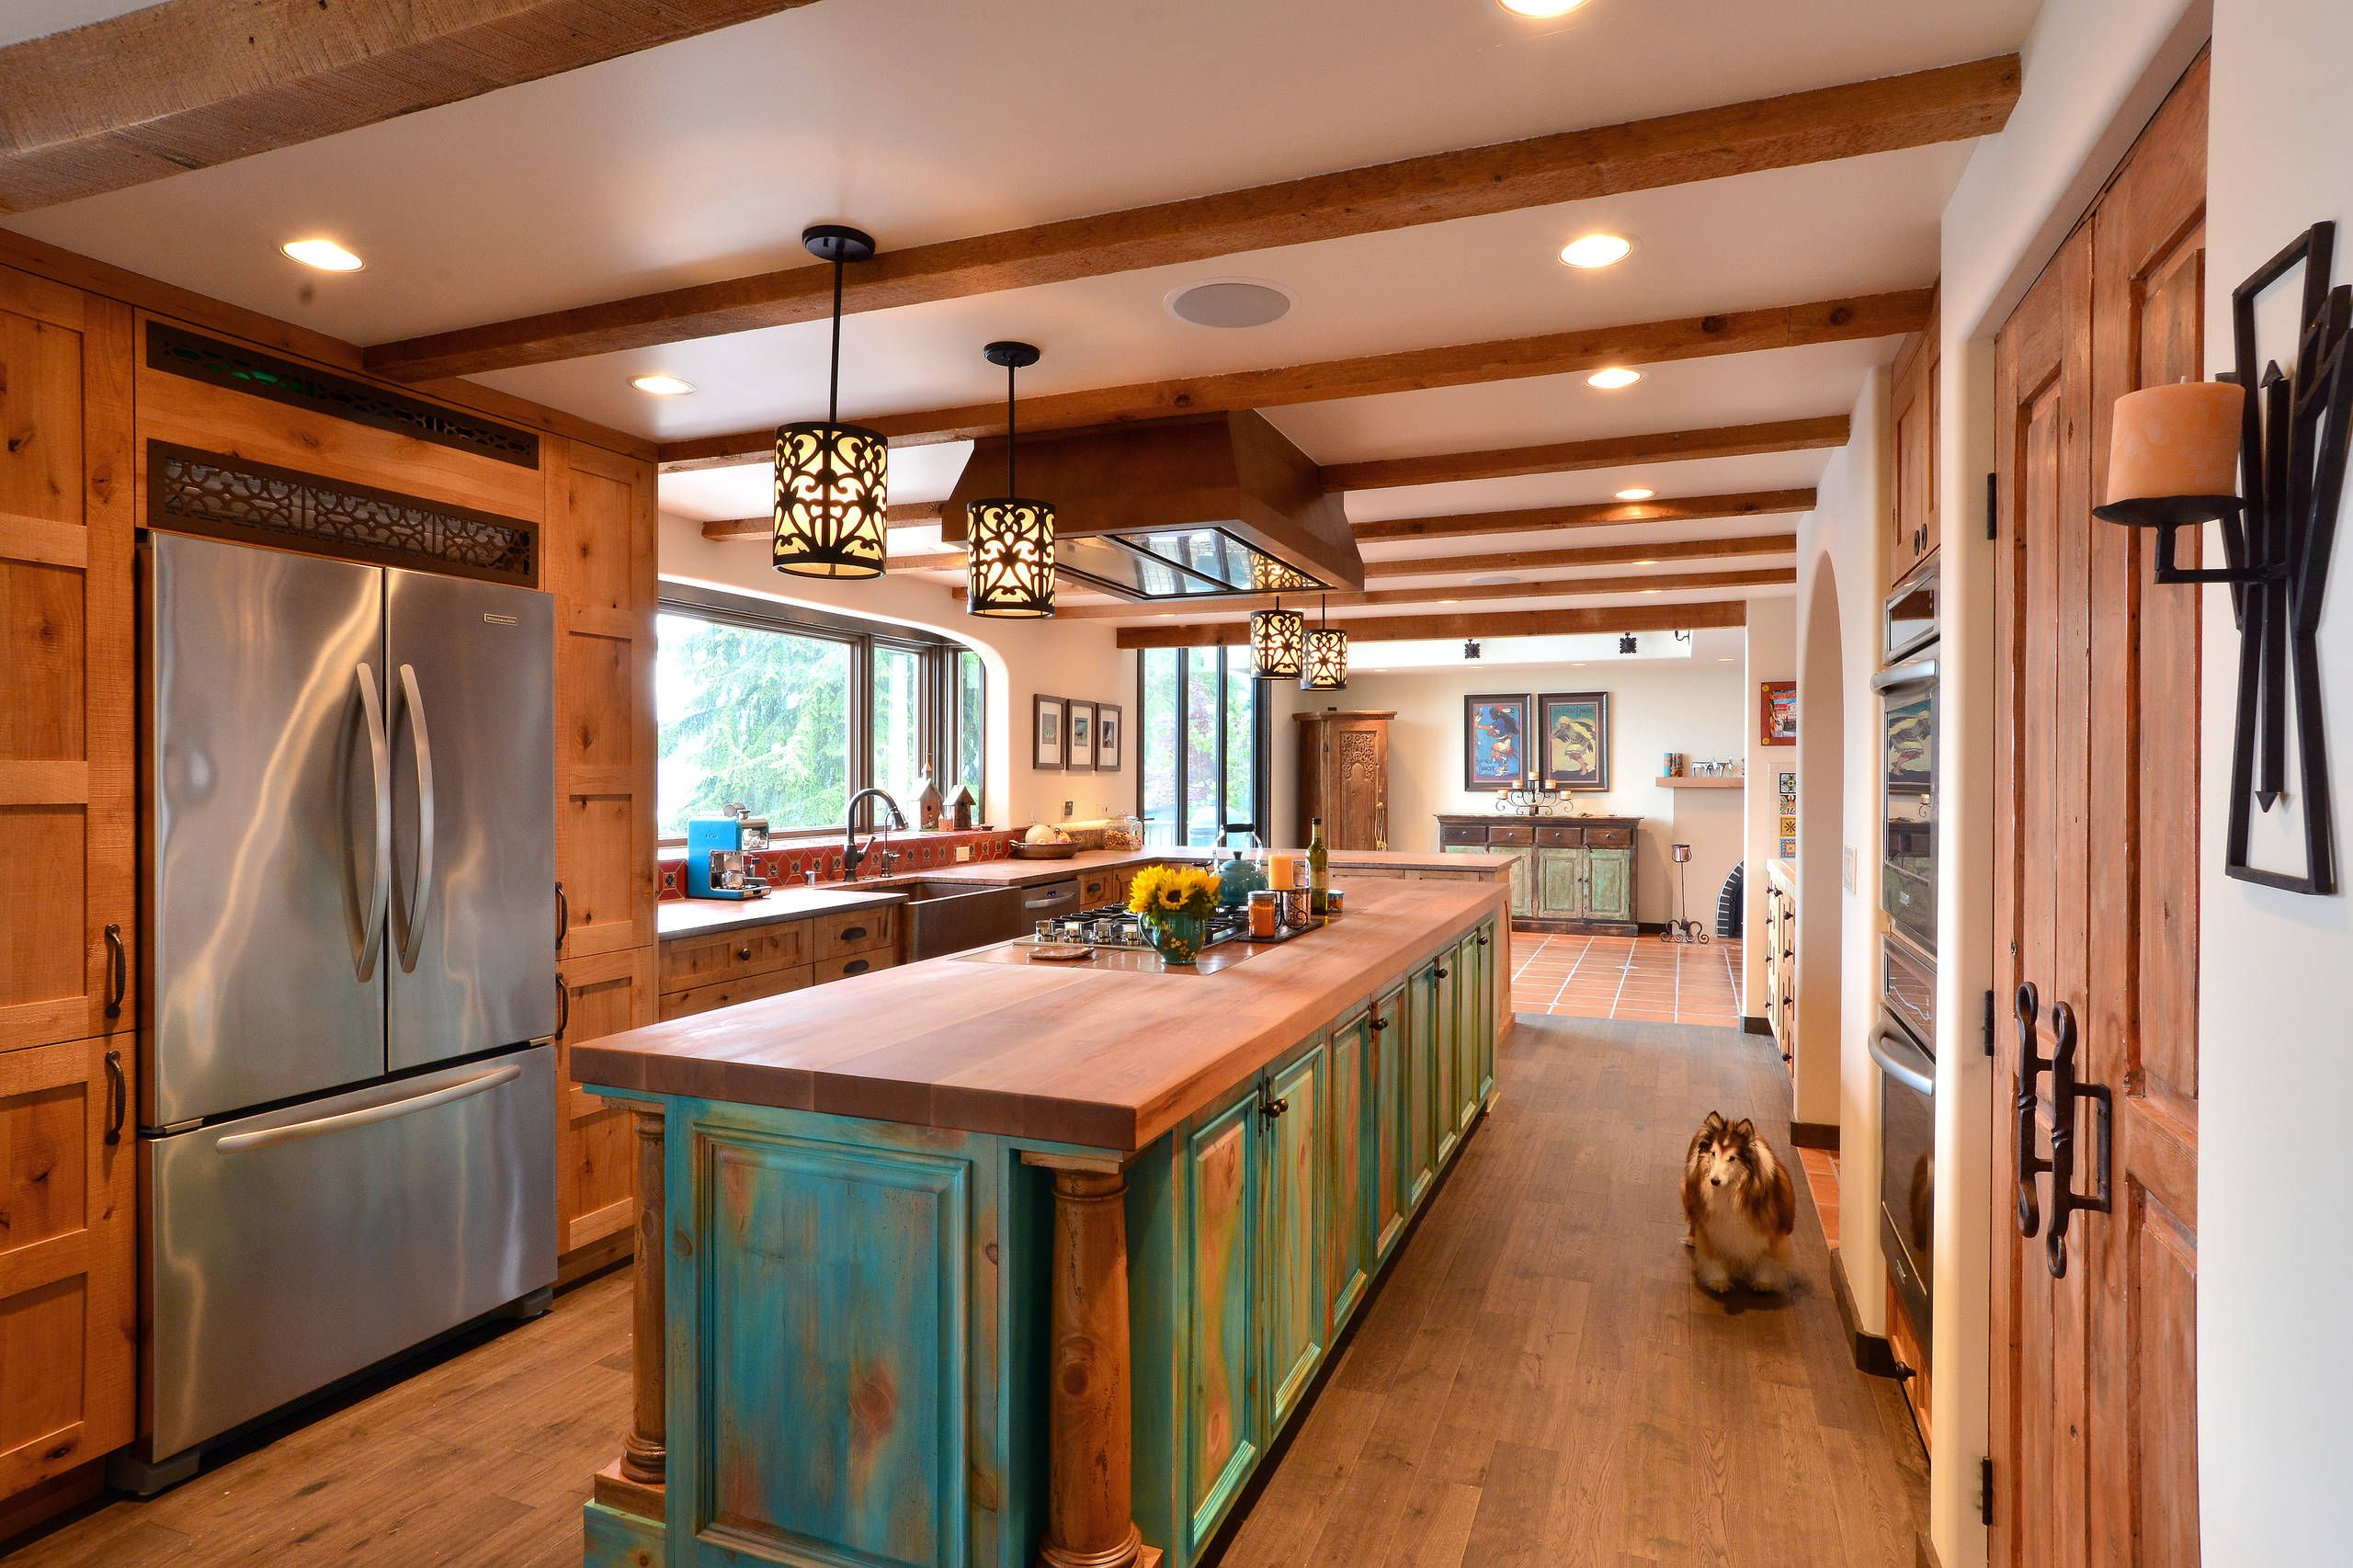 27 Southwest Kitchen Designs And Ideas Home Awakening Condo Kitchen Remodel Kitchen Remodel Layout Southwest Kitchen